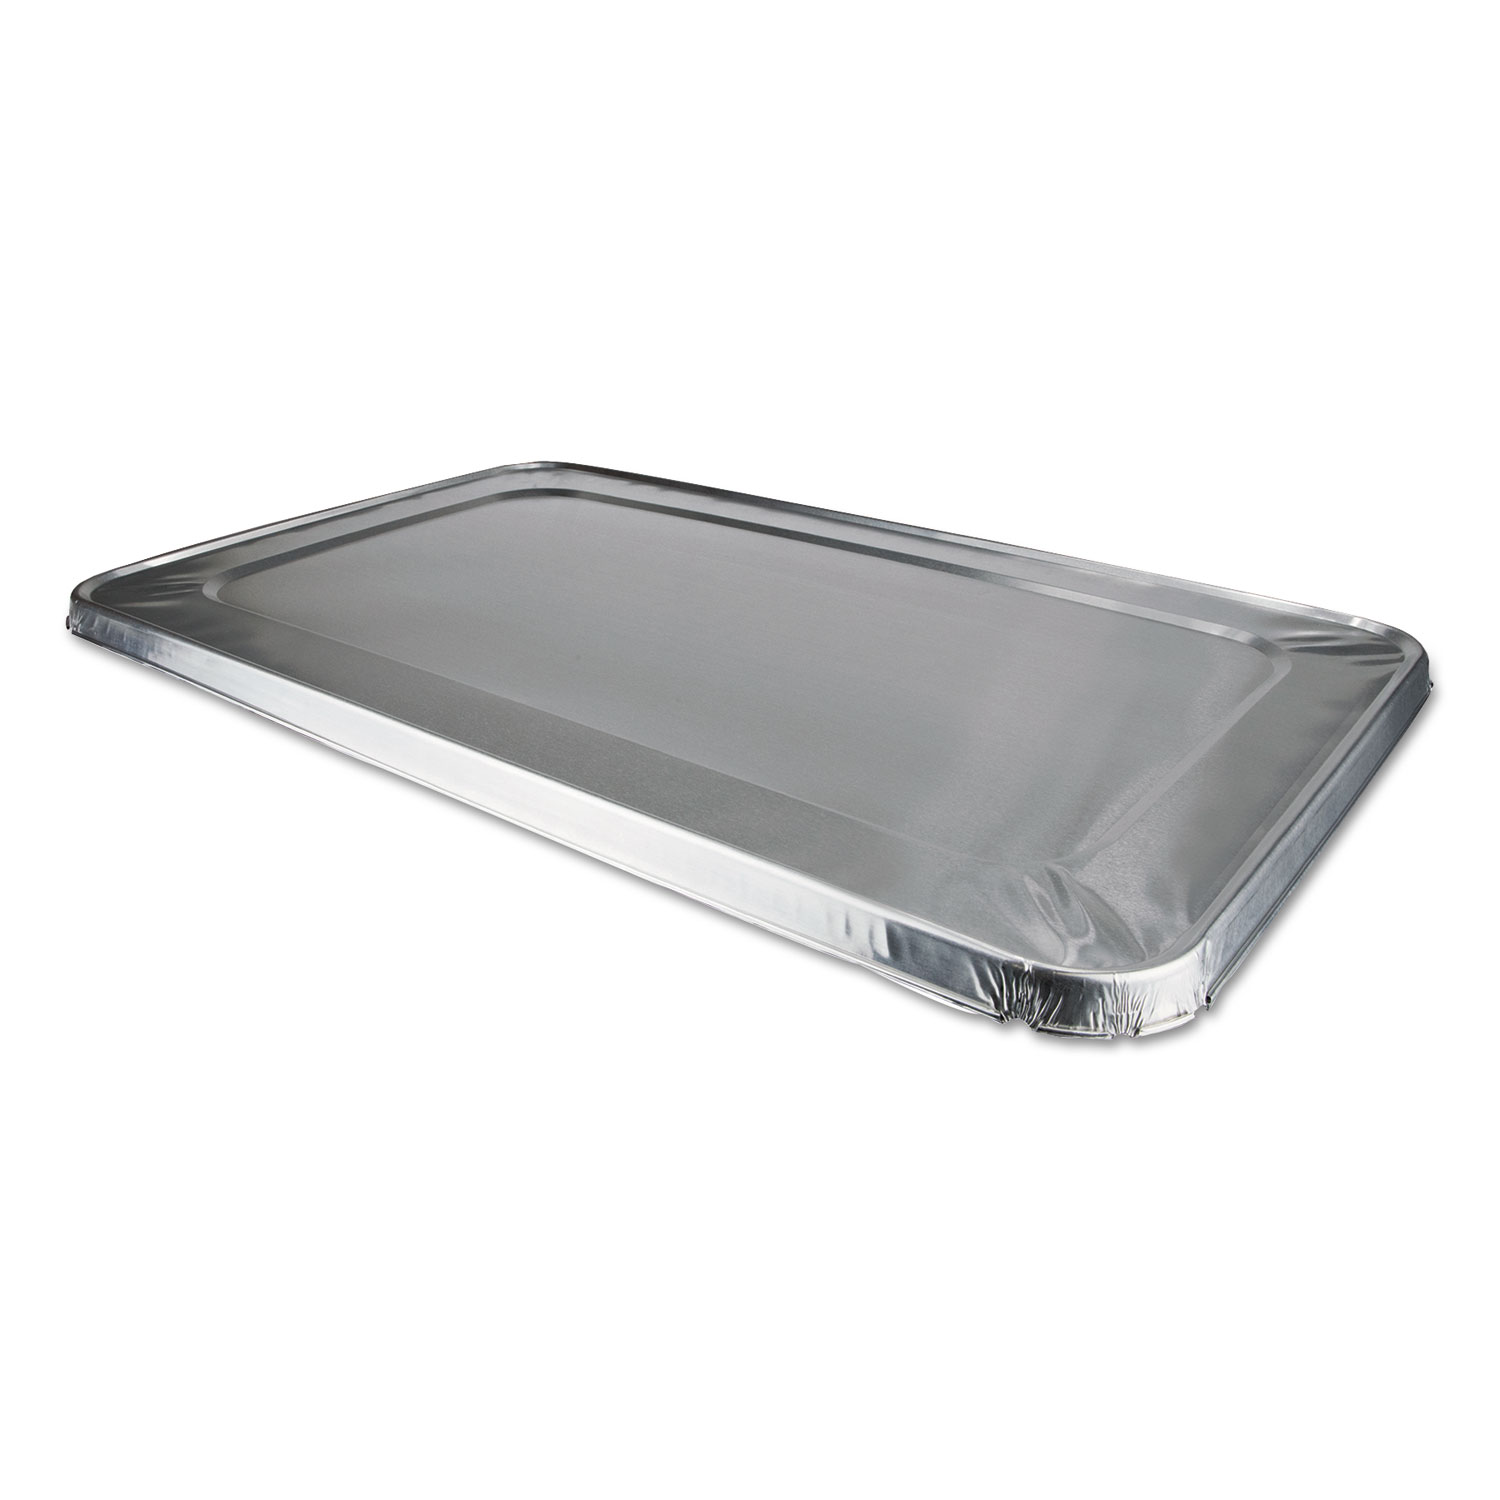 Aluminum Steam Table Lids for Rolled Edge Half Size Pan, 50/Carton